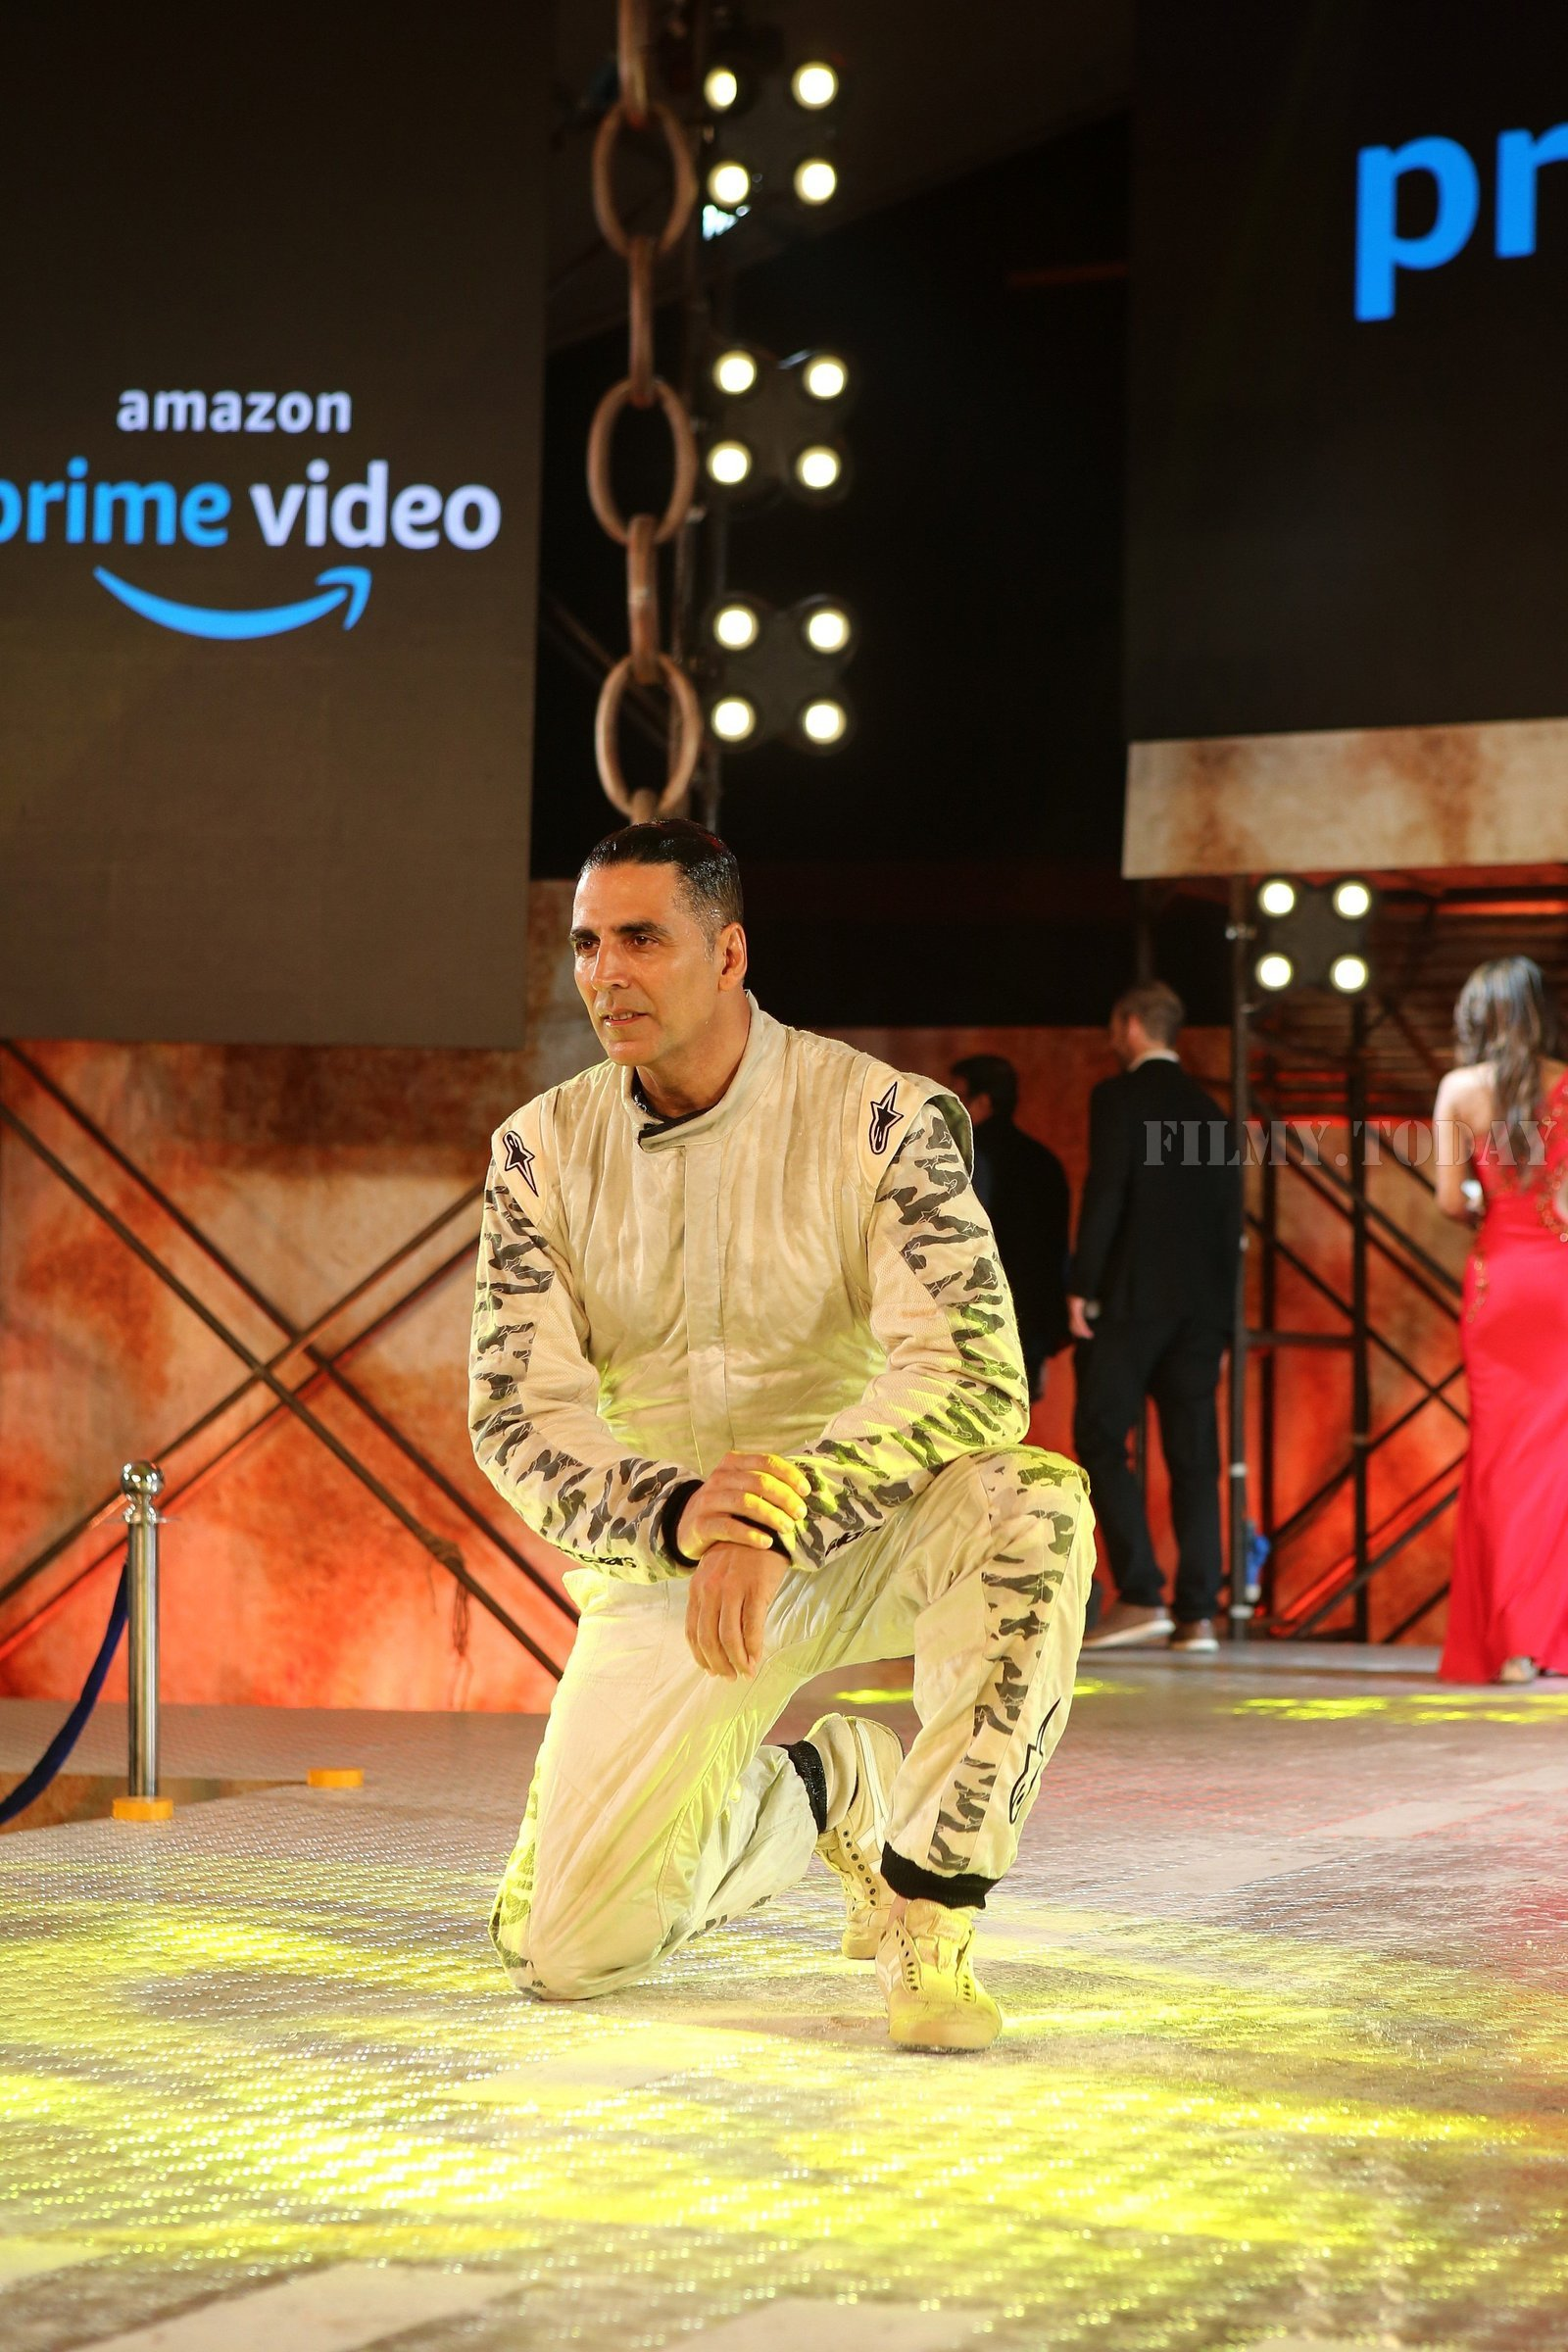 Akshay Kumar - Photos: Akshay Kumar makes his digital debut with Amazon Prime Video | Picture 1632009